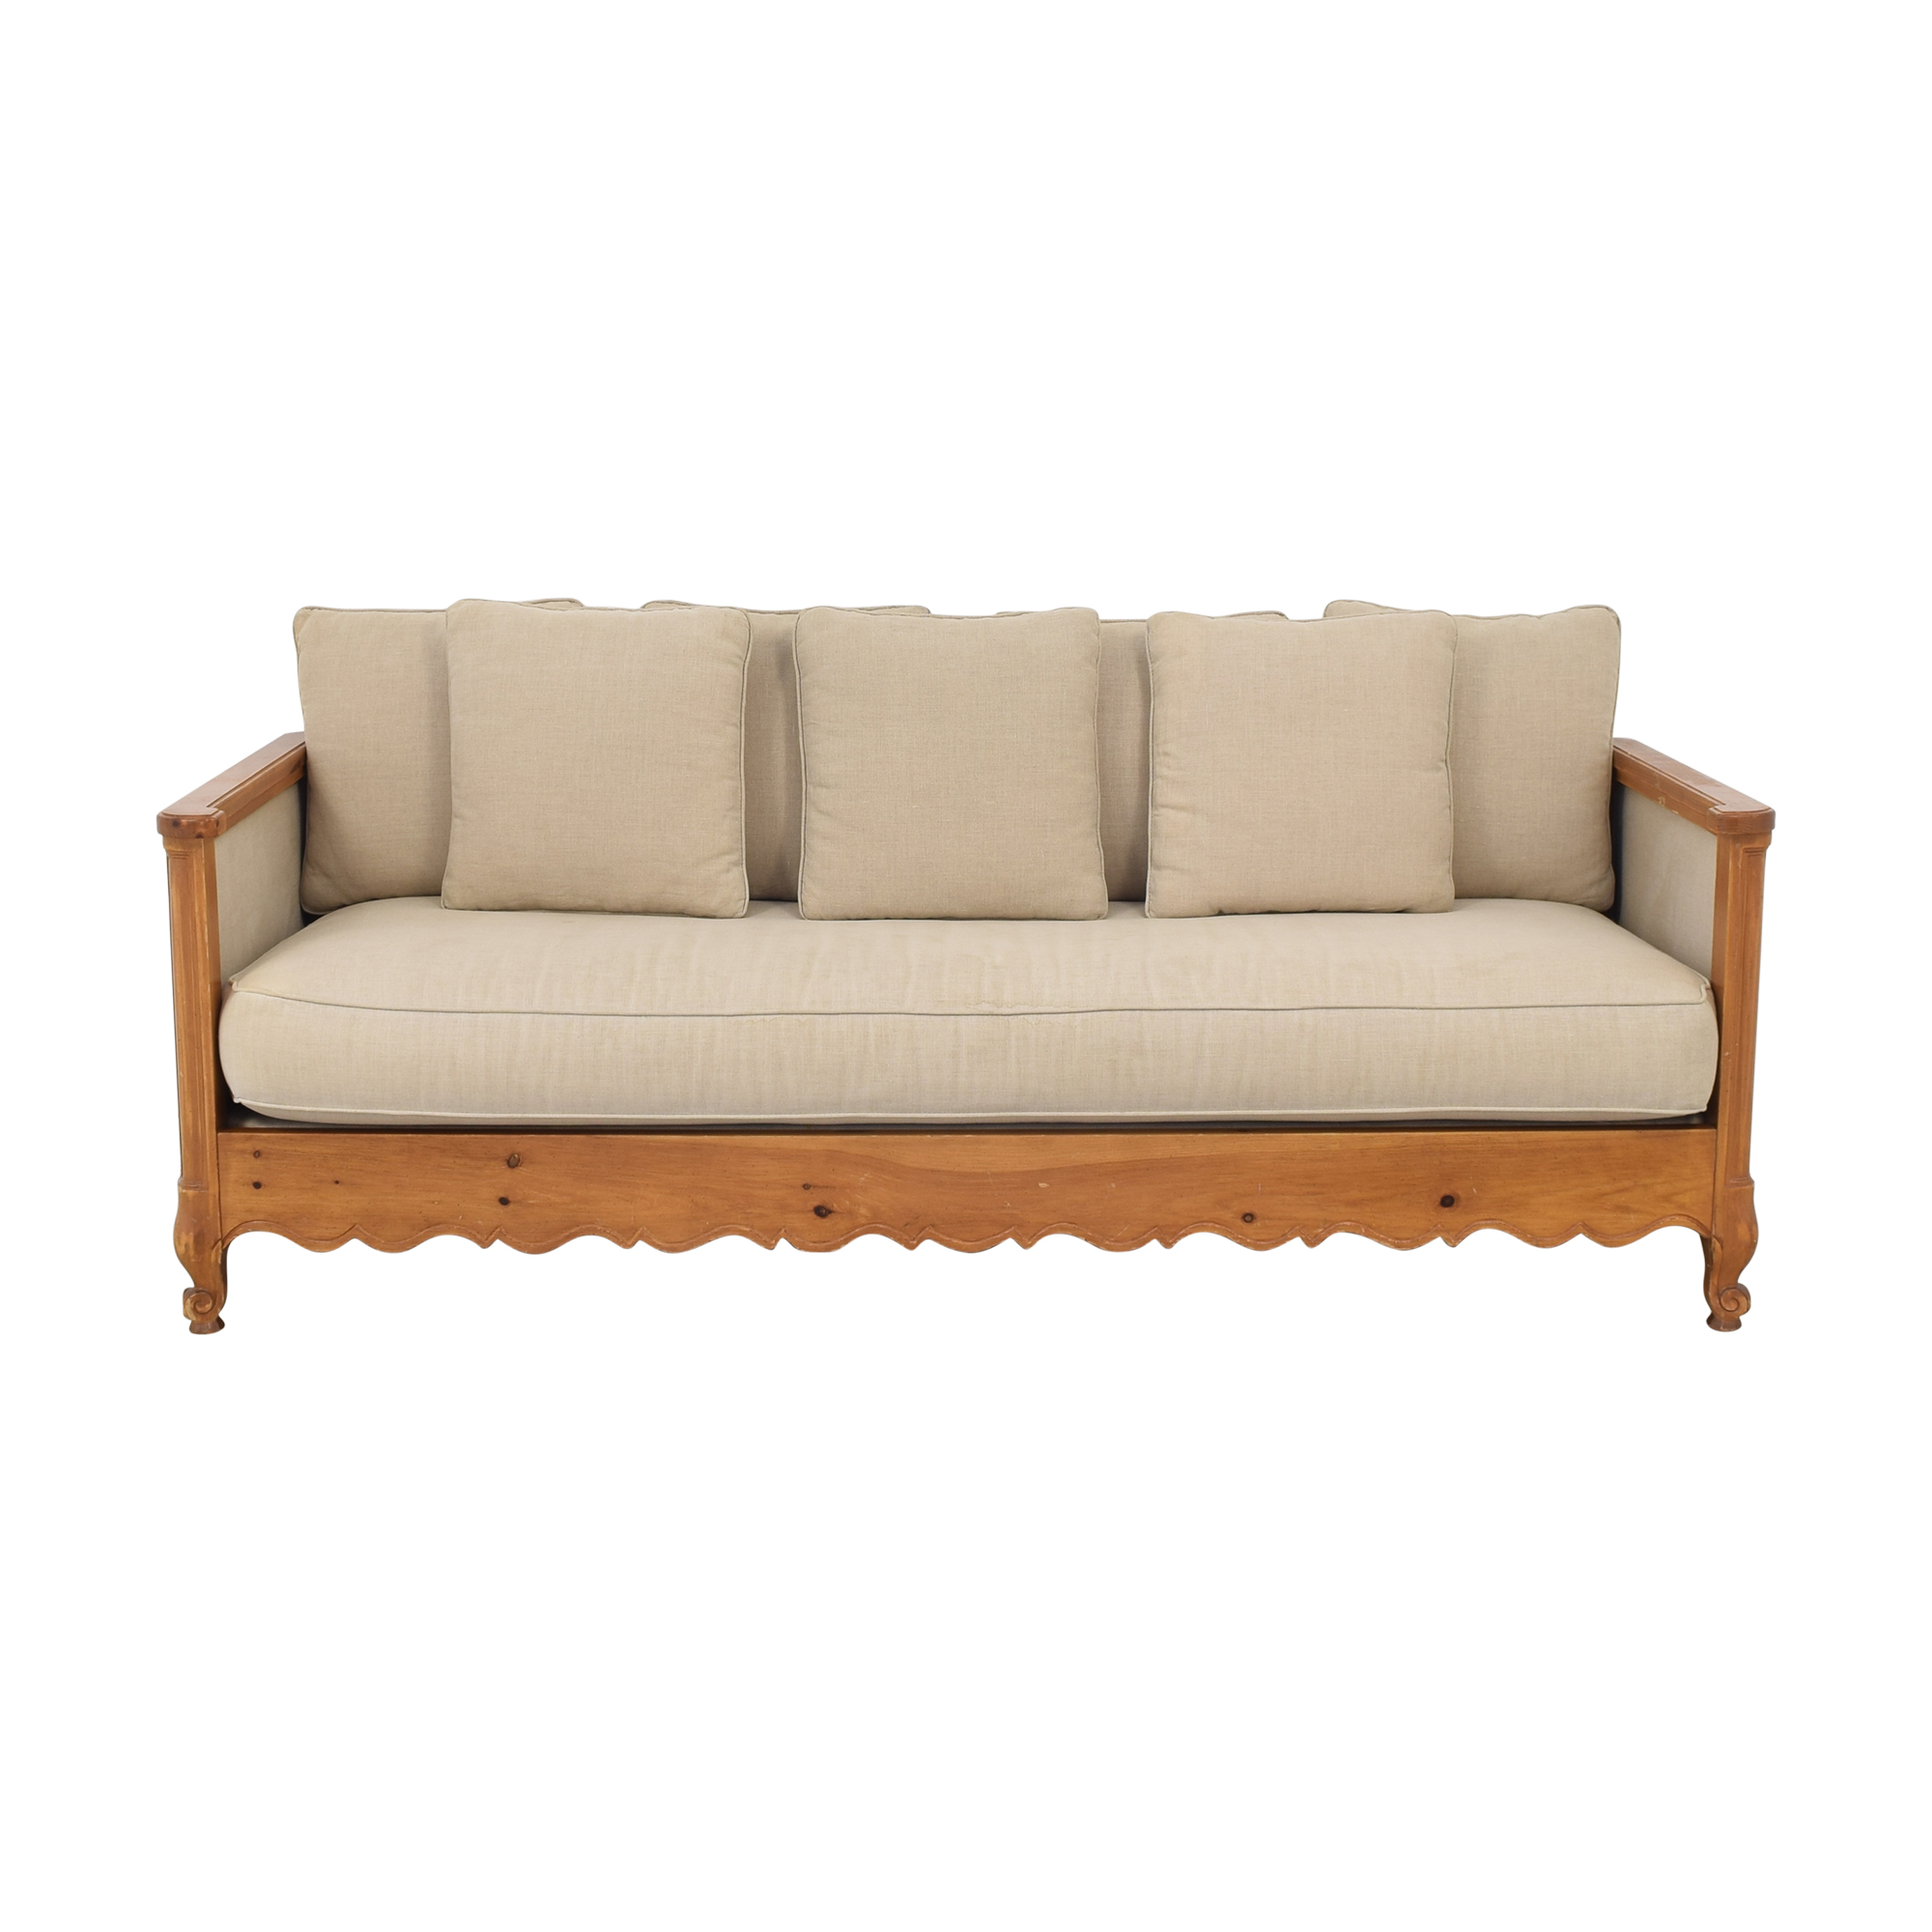 Wood Frame Sofa on sale